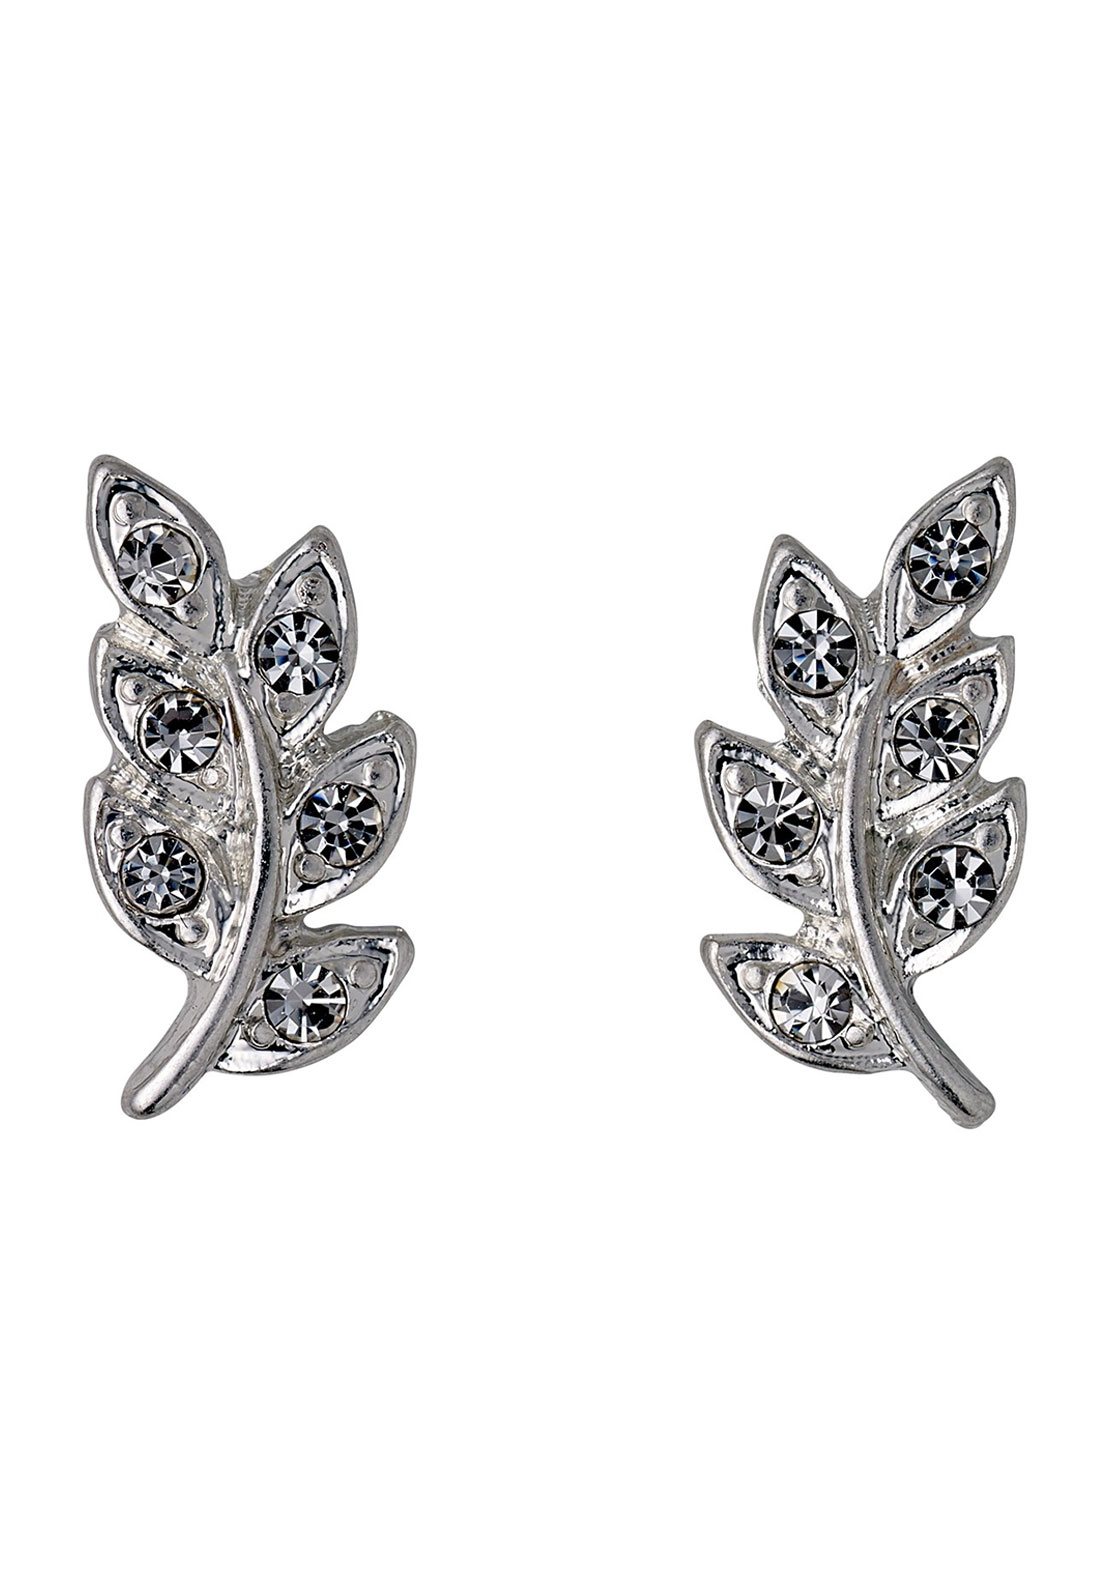 Pilgrim Crystal Leaf Stud Earrings, Silver